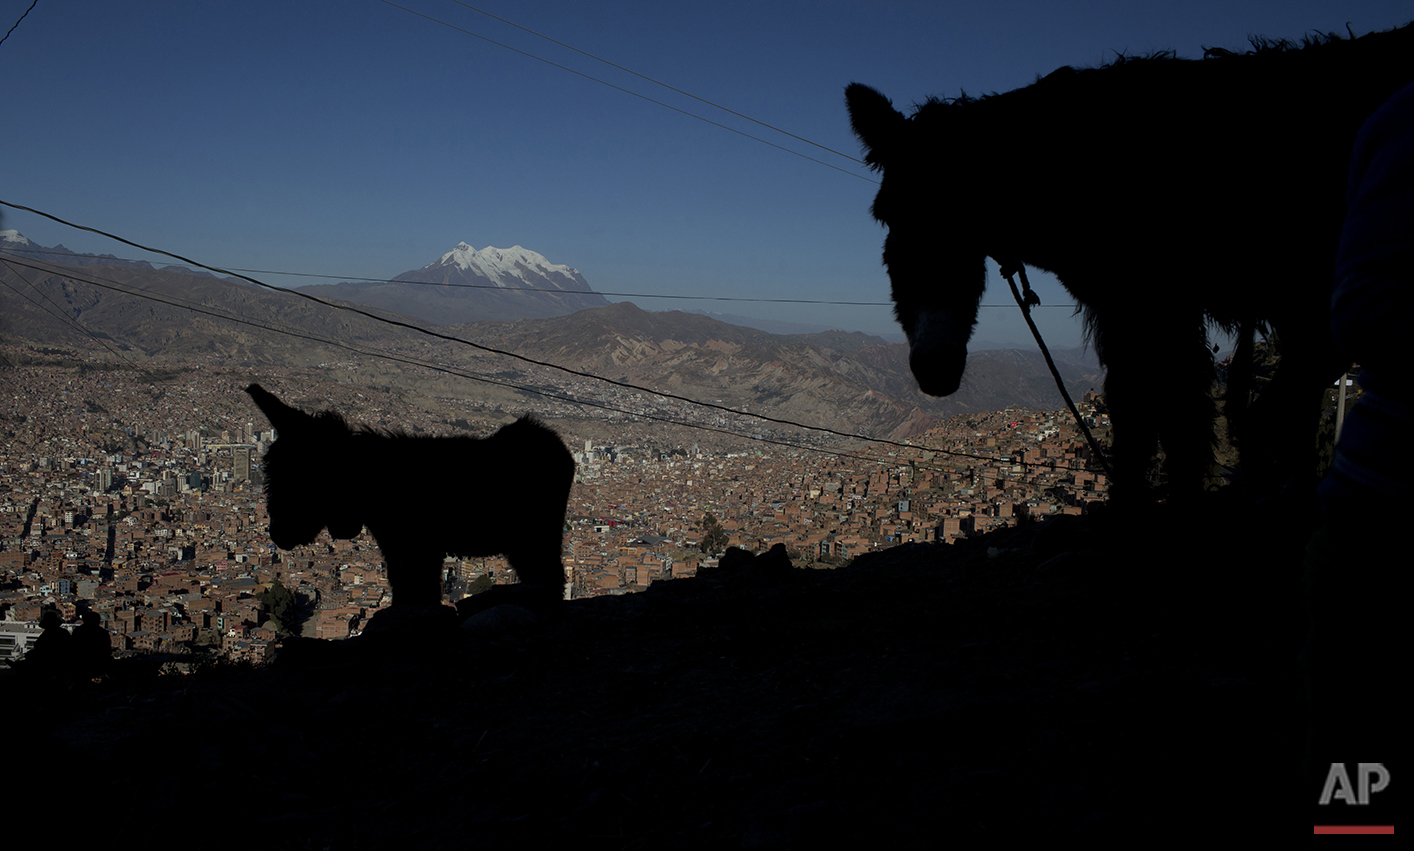 In this May 22, 2016 photo, a donkey, whose milk is sold by her owner, stands with her foal overlooking La Paz and the snow capped Illimani Mountain in El Alto, Bolivia. Elizabth Canipa, director of the maternal milk program with Bolivia's Health Ministry, said there is no scientific study proving that donkey milk has curative properties. (AP Photo/Juan Karita)